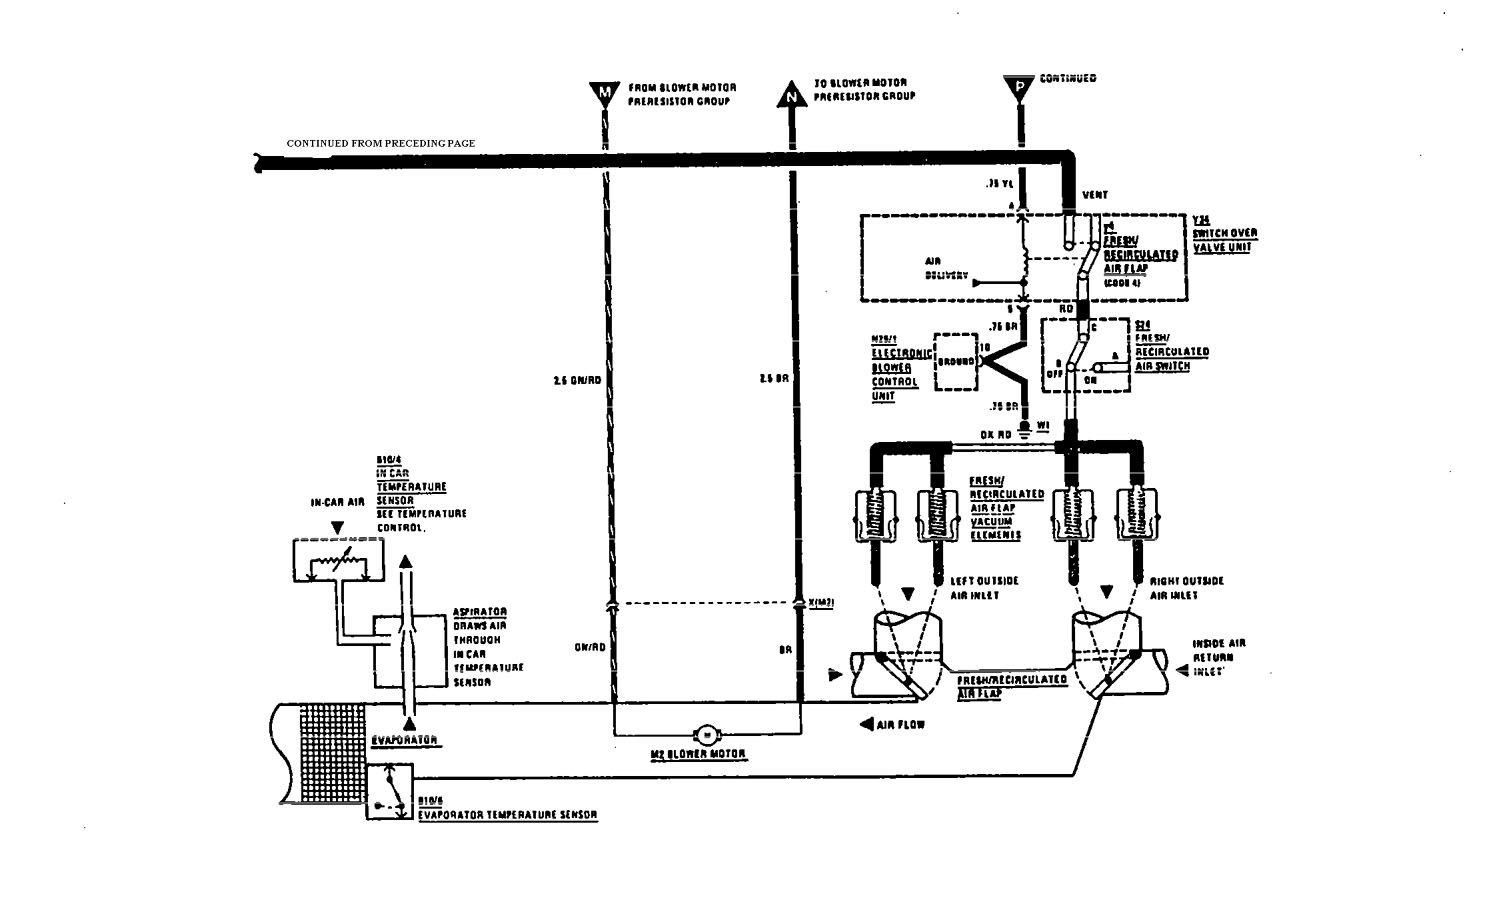 Mercedes Air Conditioner Wiring Diagrams Electrical Benz A160 Diagram 300sel 1991 Hvac Controls Car